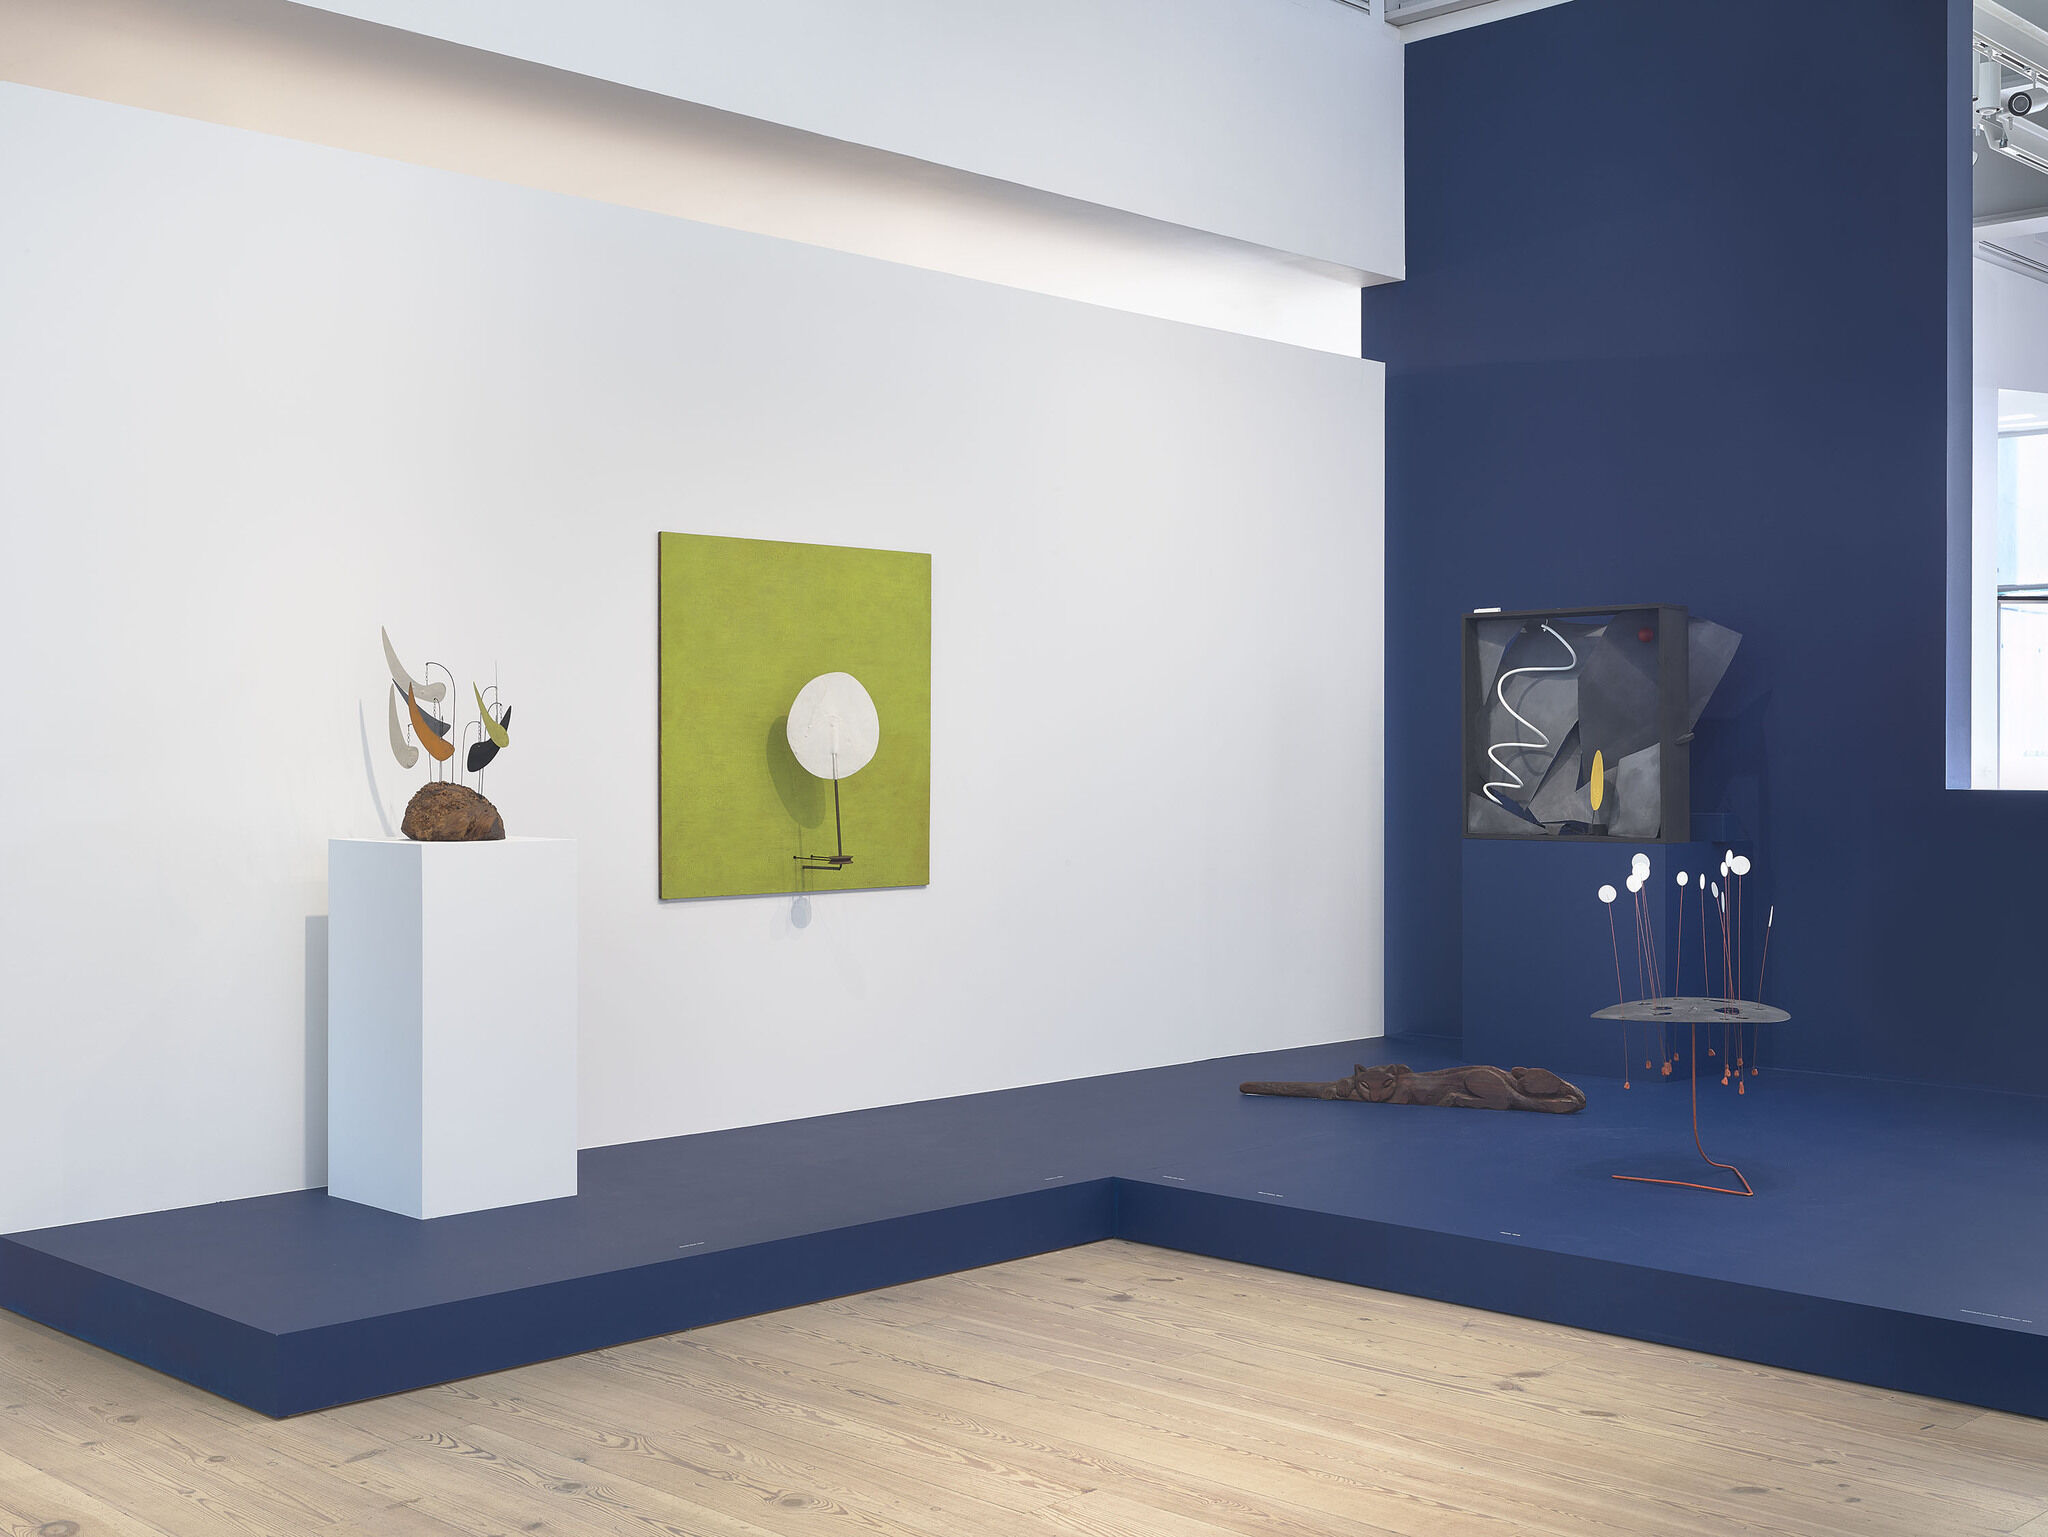 Gallery view of Calder: Hypermobility